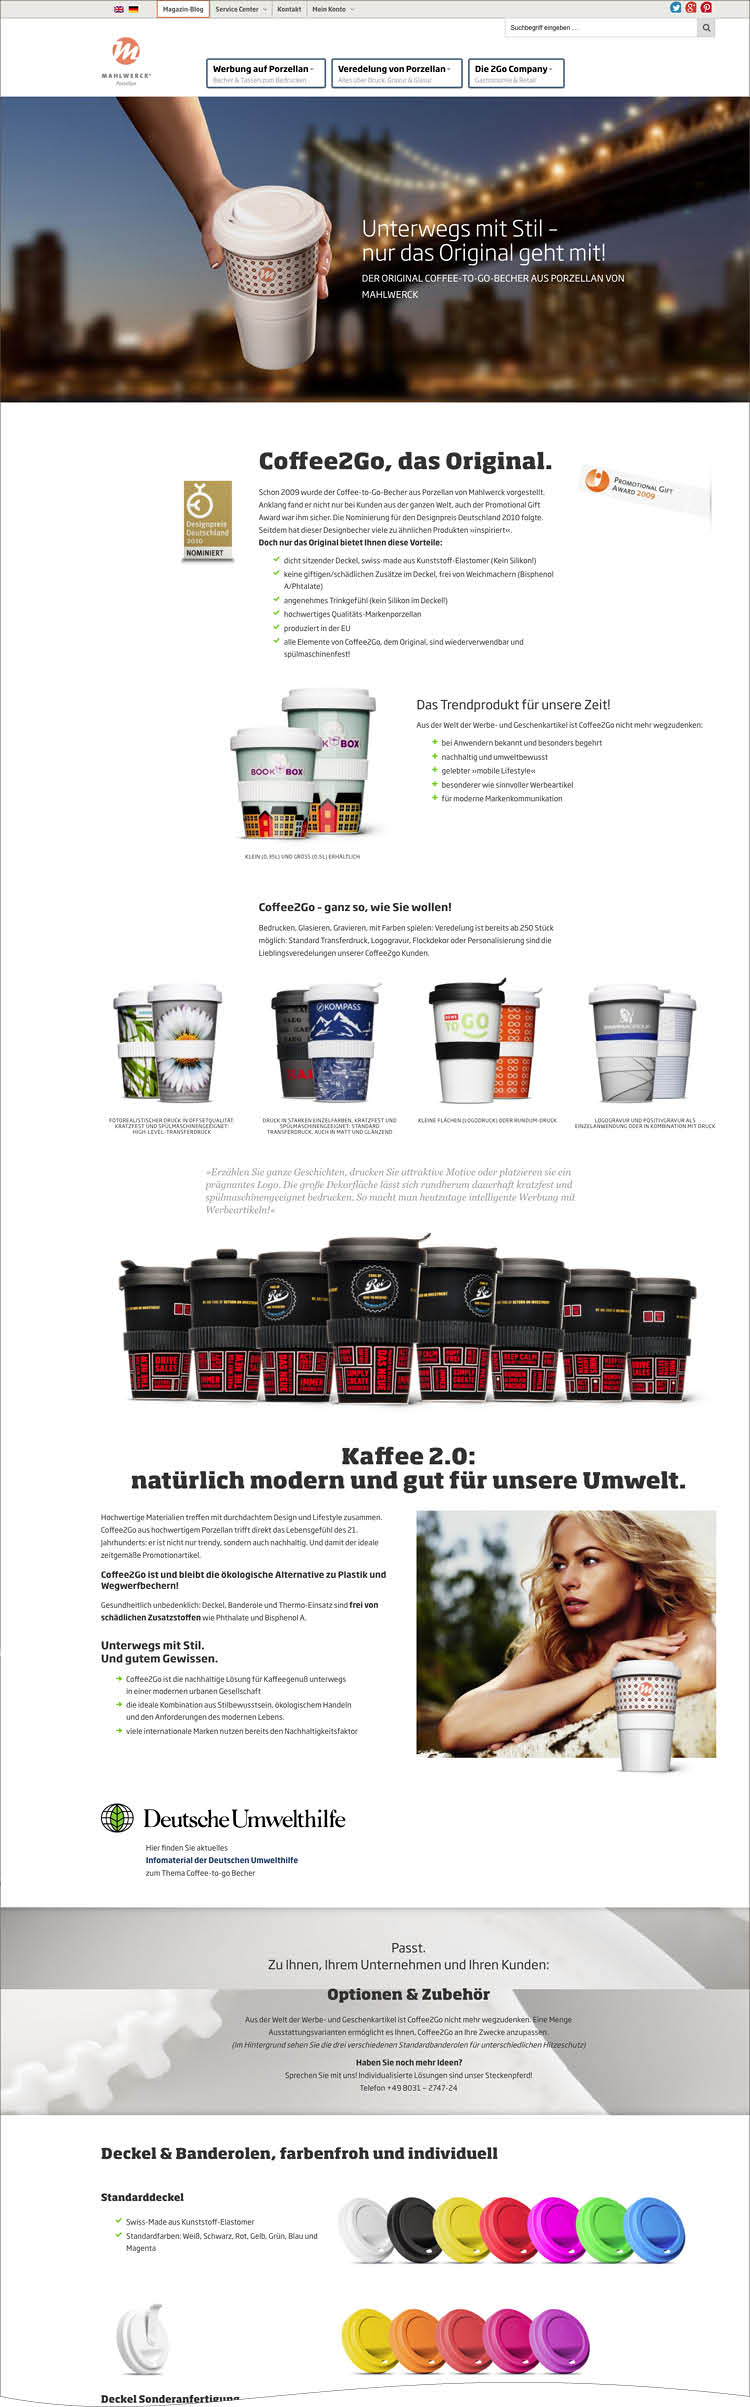 Das Product Special für Coffee to Go - Mahlwerck Website